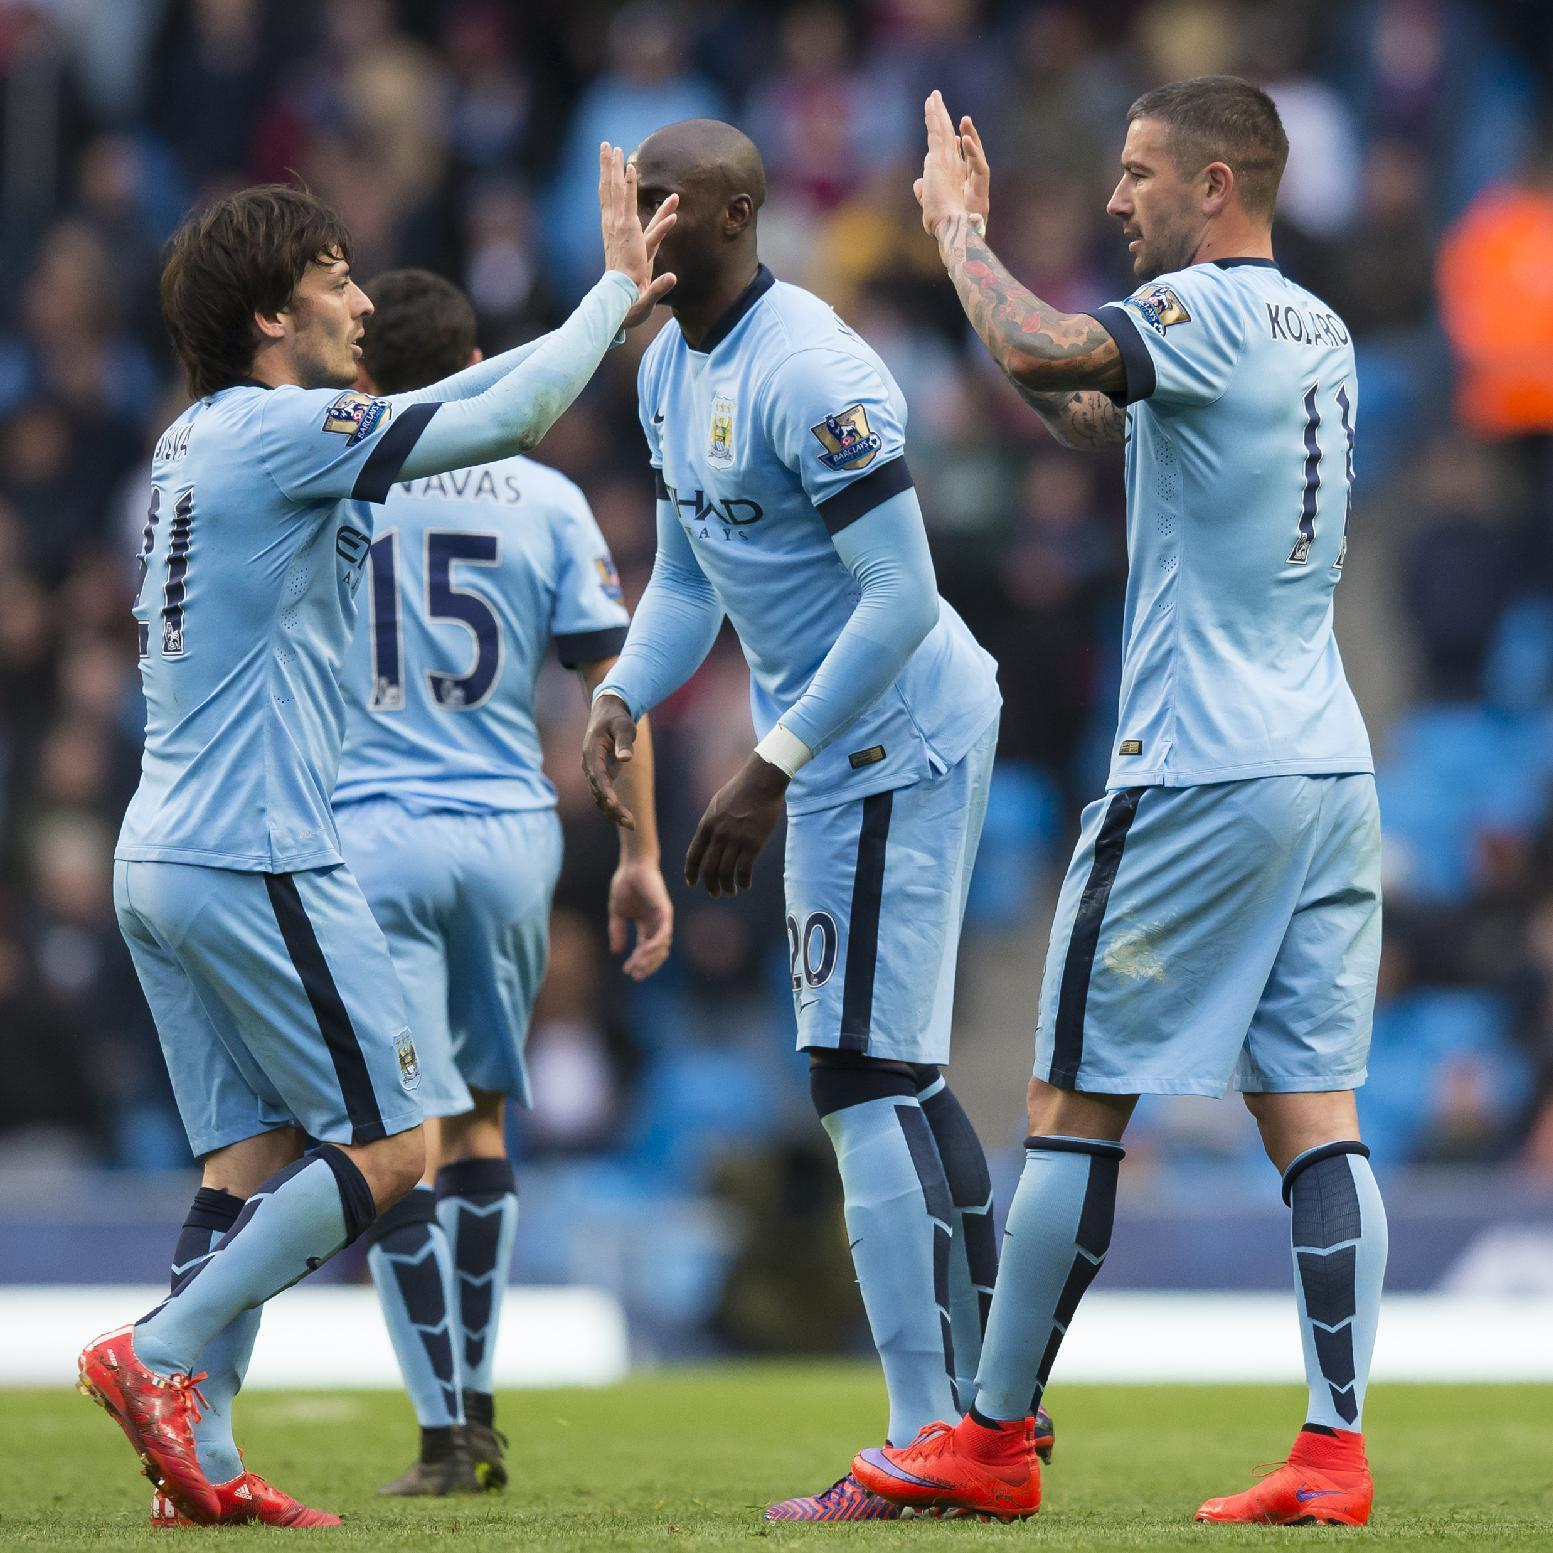 Man City leaves it late to beat Aston Villa 3-2 in EPL